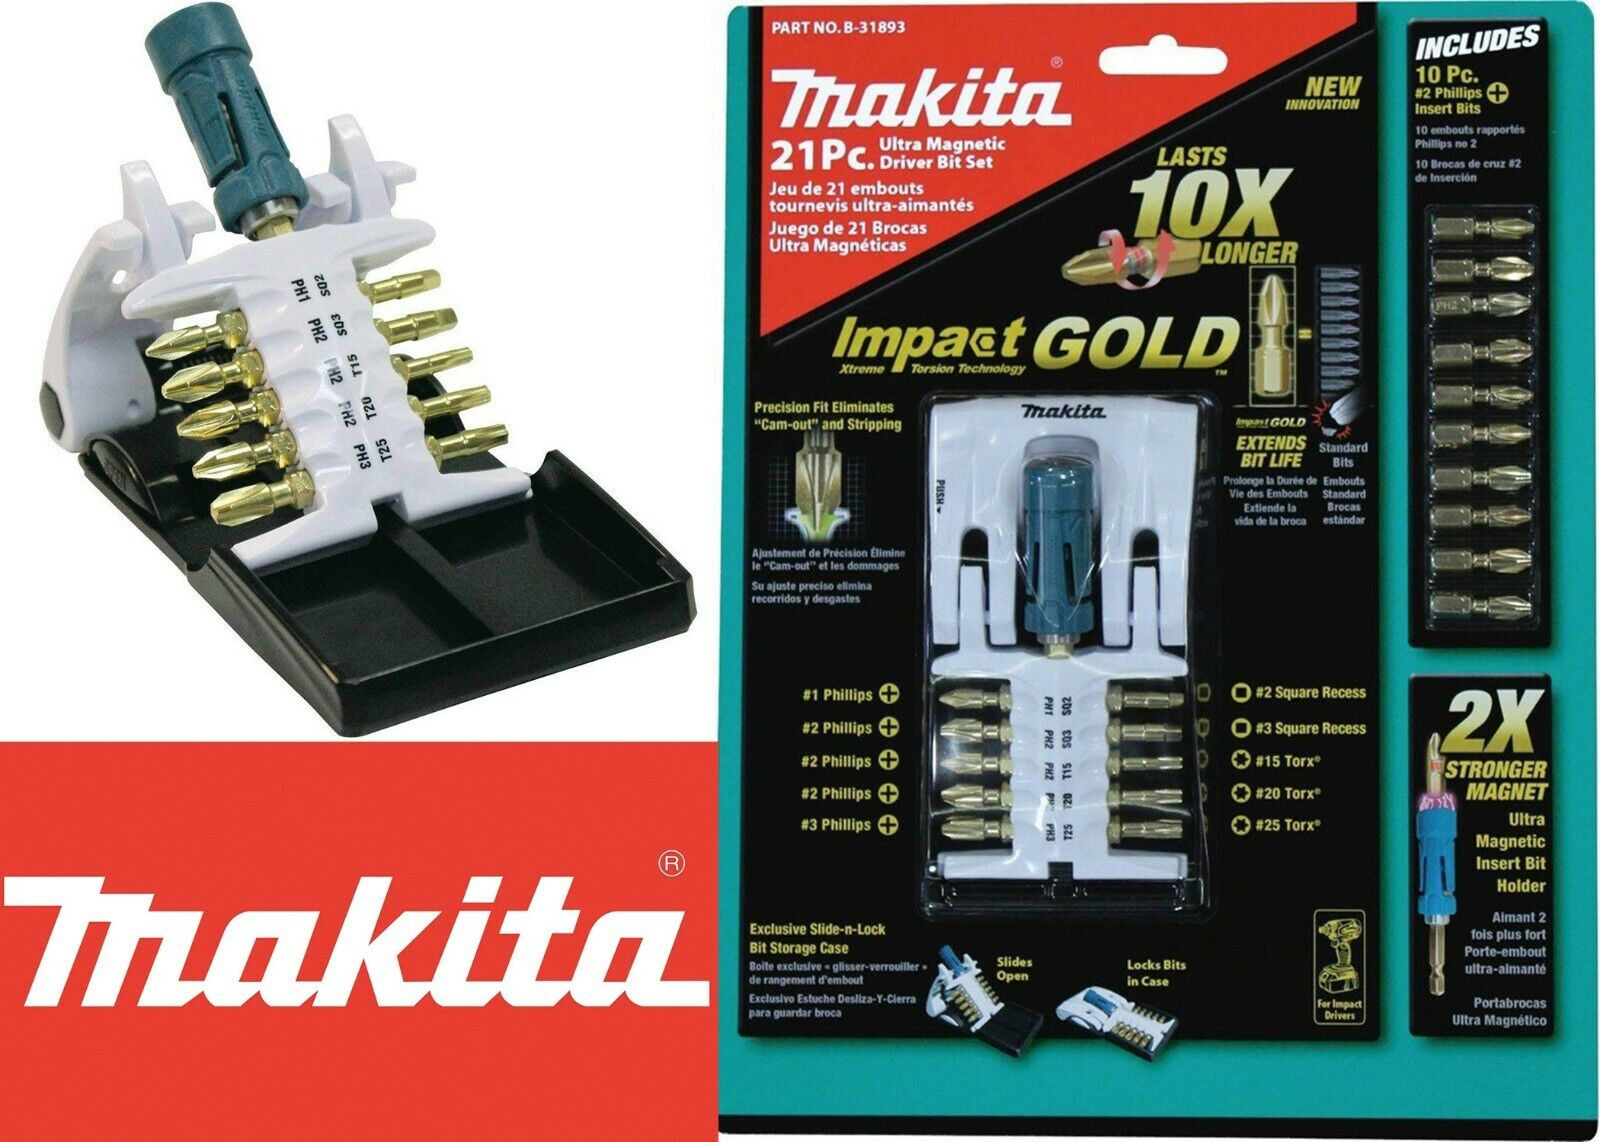 Makita B-31893 Ultra Magnetic Driver Bit Set, 21-Piece